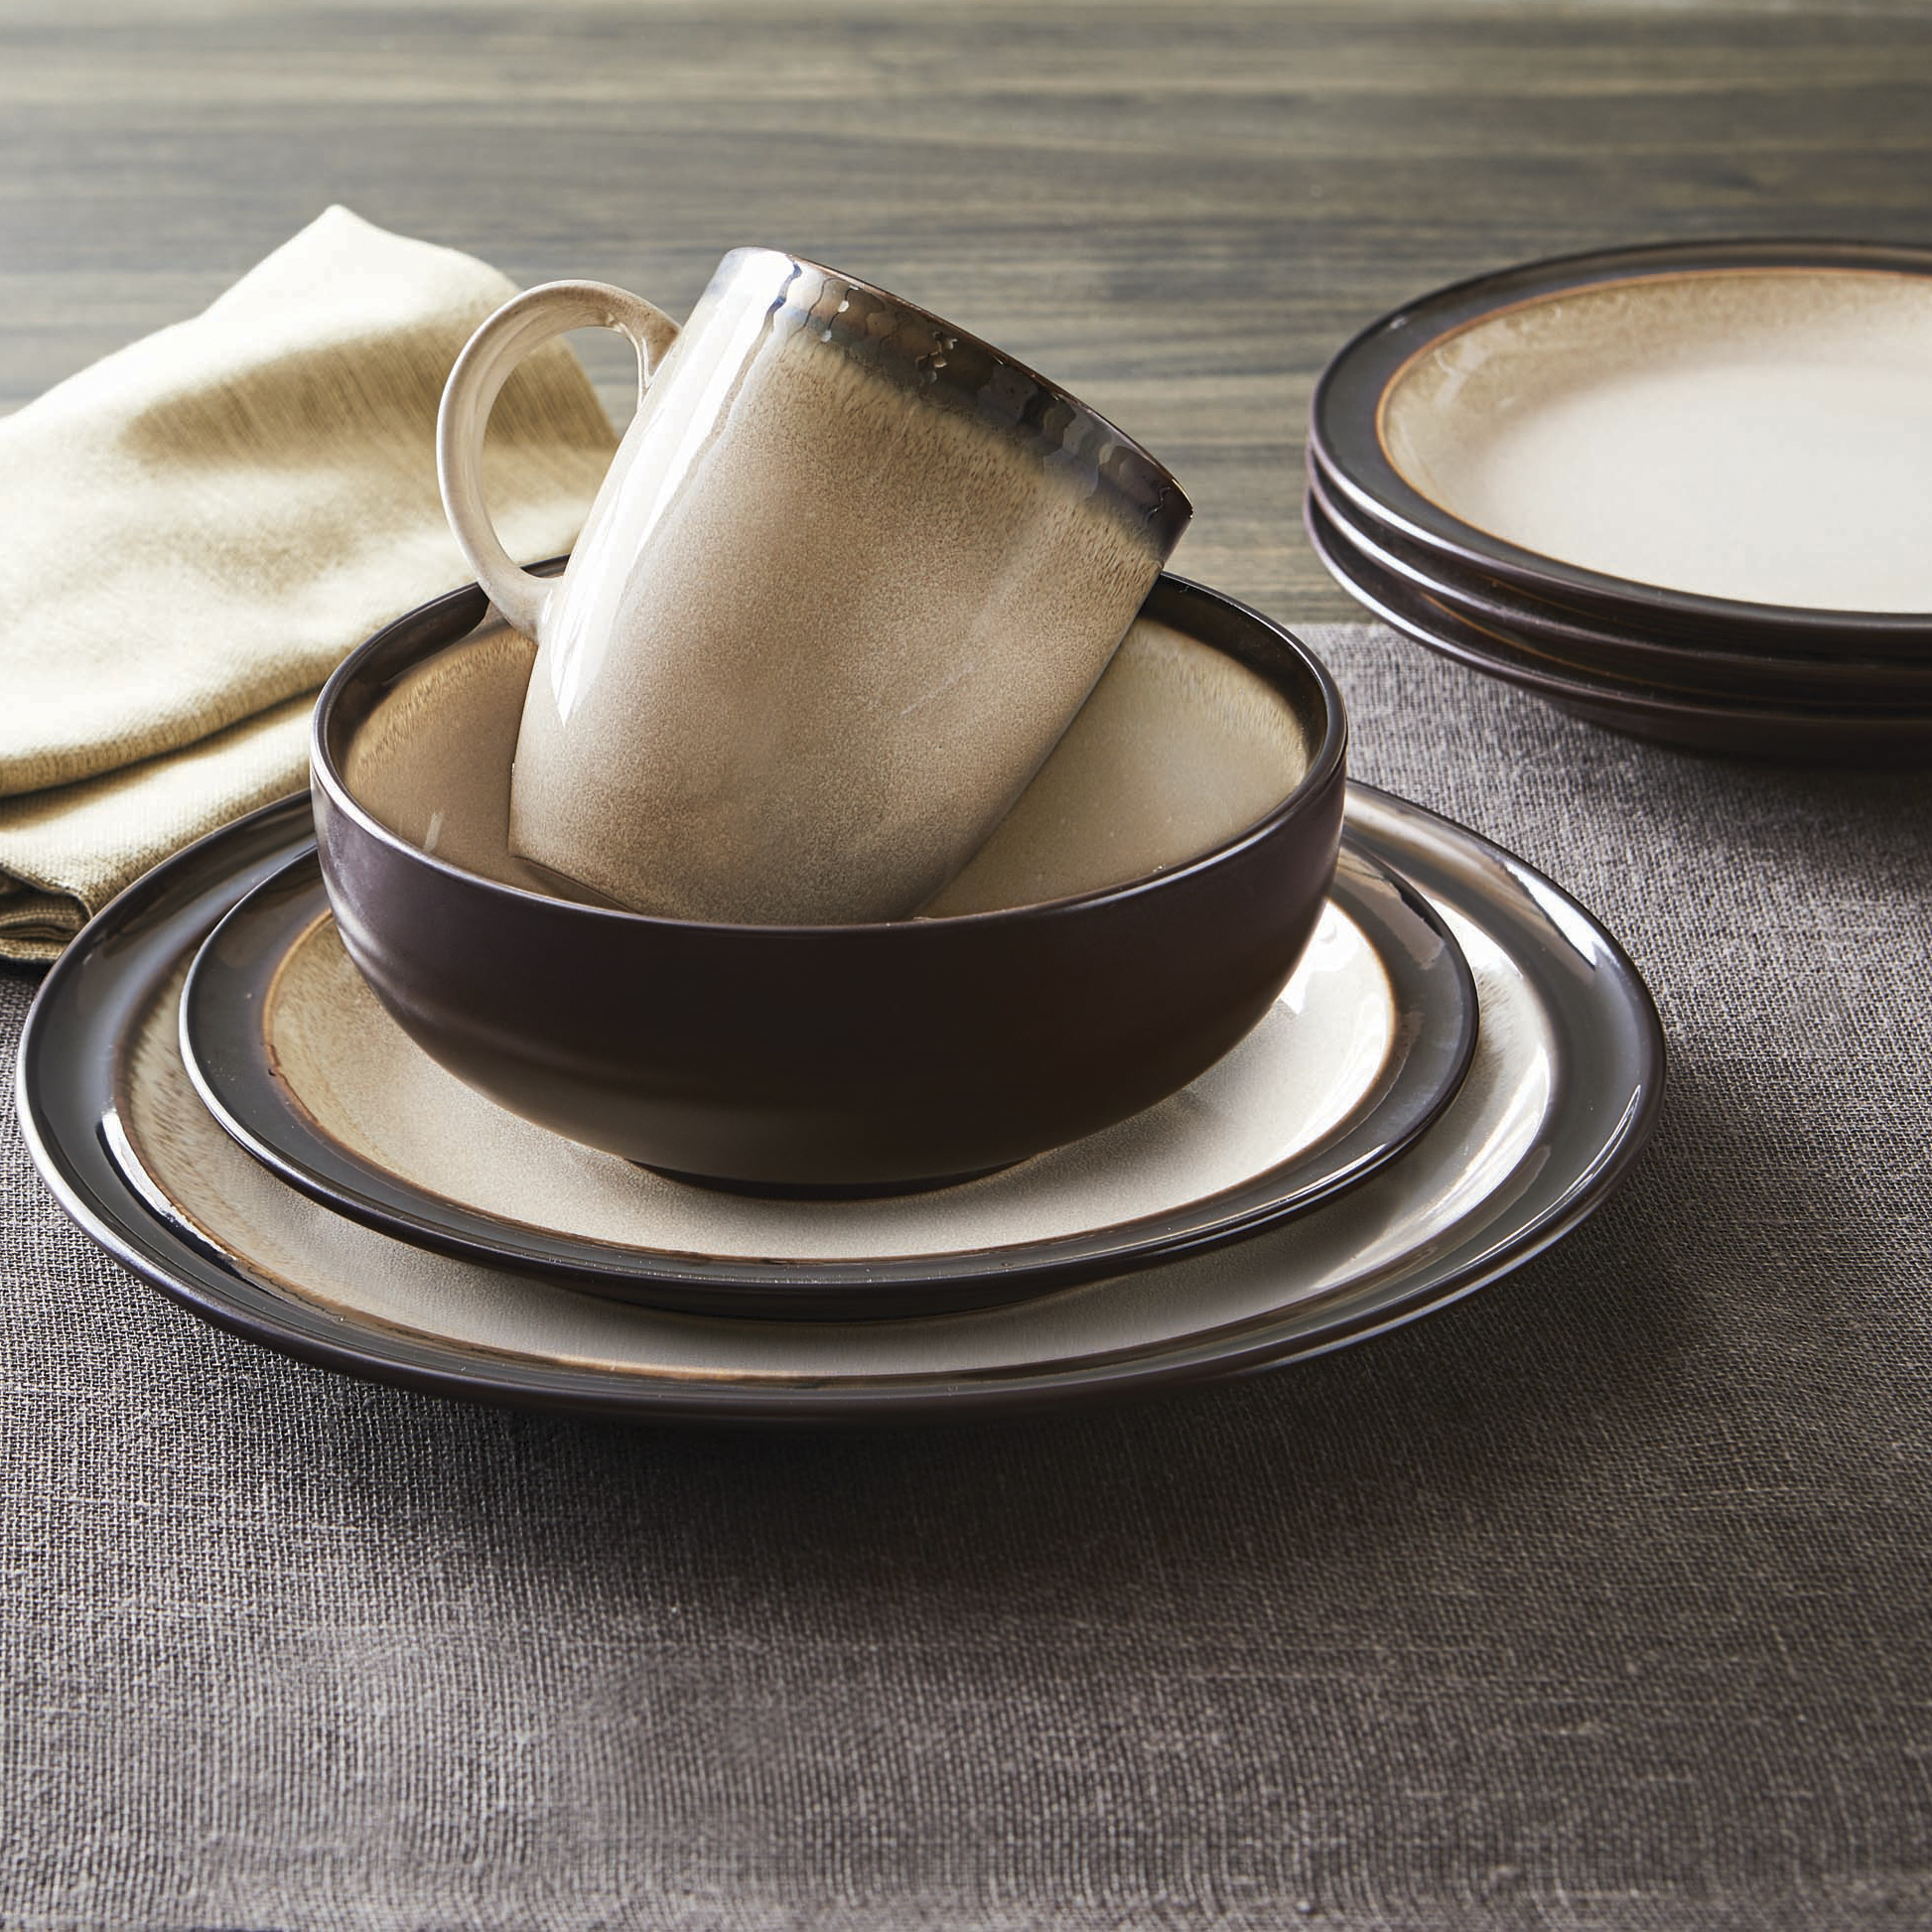 Better Homes and Gardens 16-Piece Sierra Dinnerware Set Beige Image 3 of 8 & Better Homes and Gardens 16-Piece Sierra Dinnerware Set Beige ...